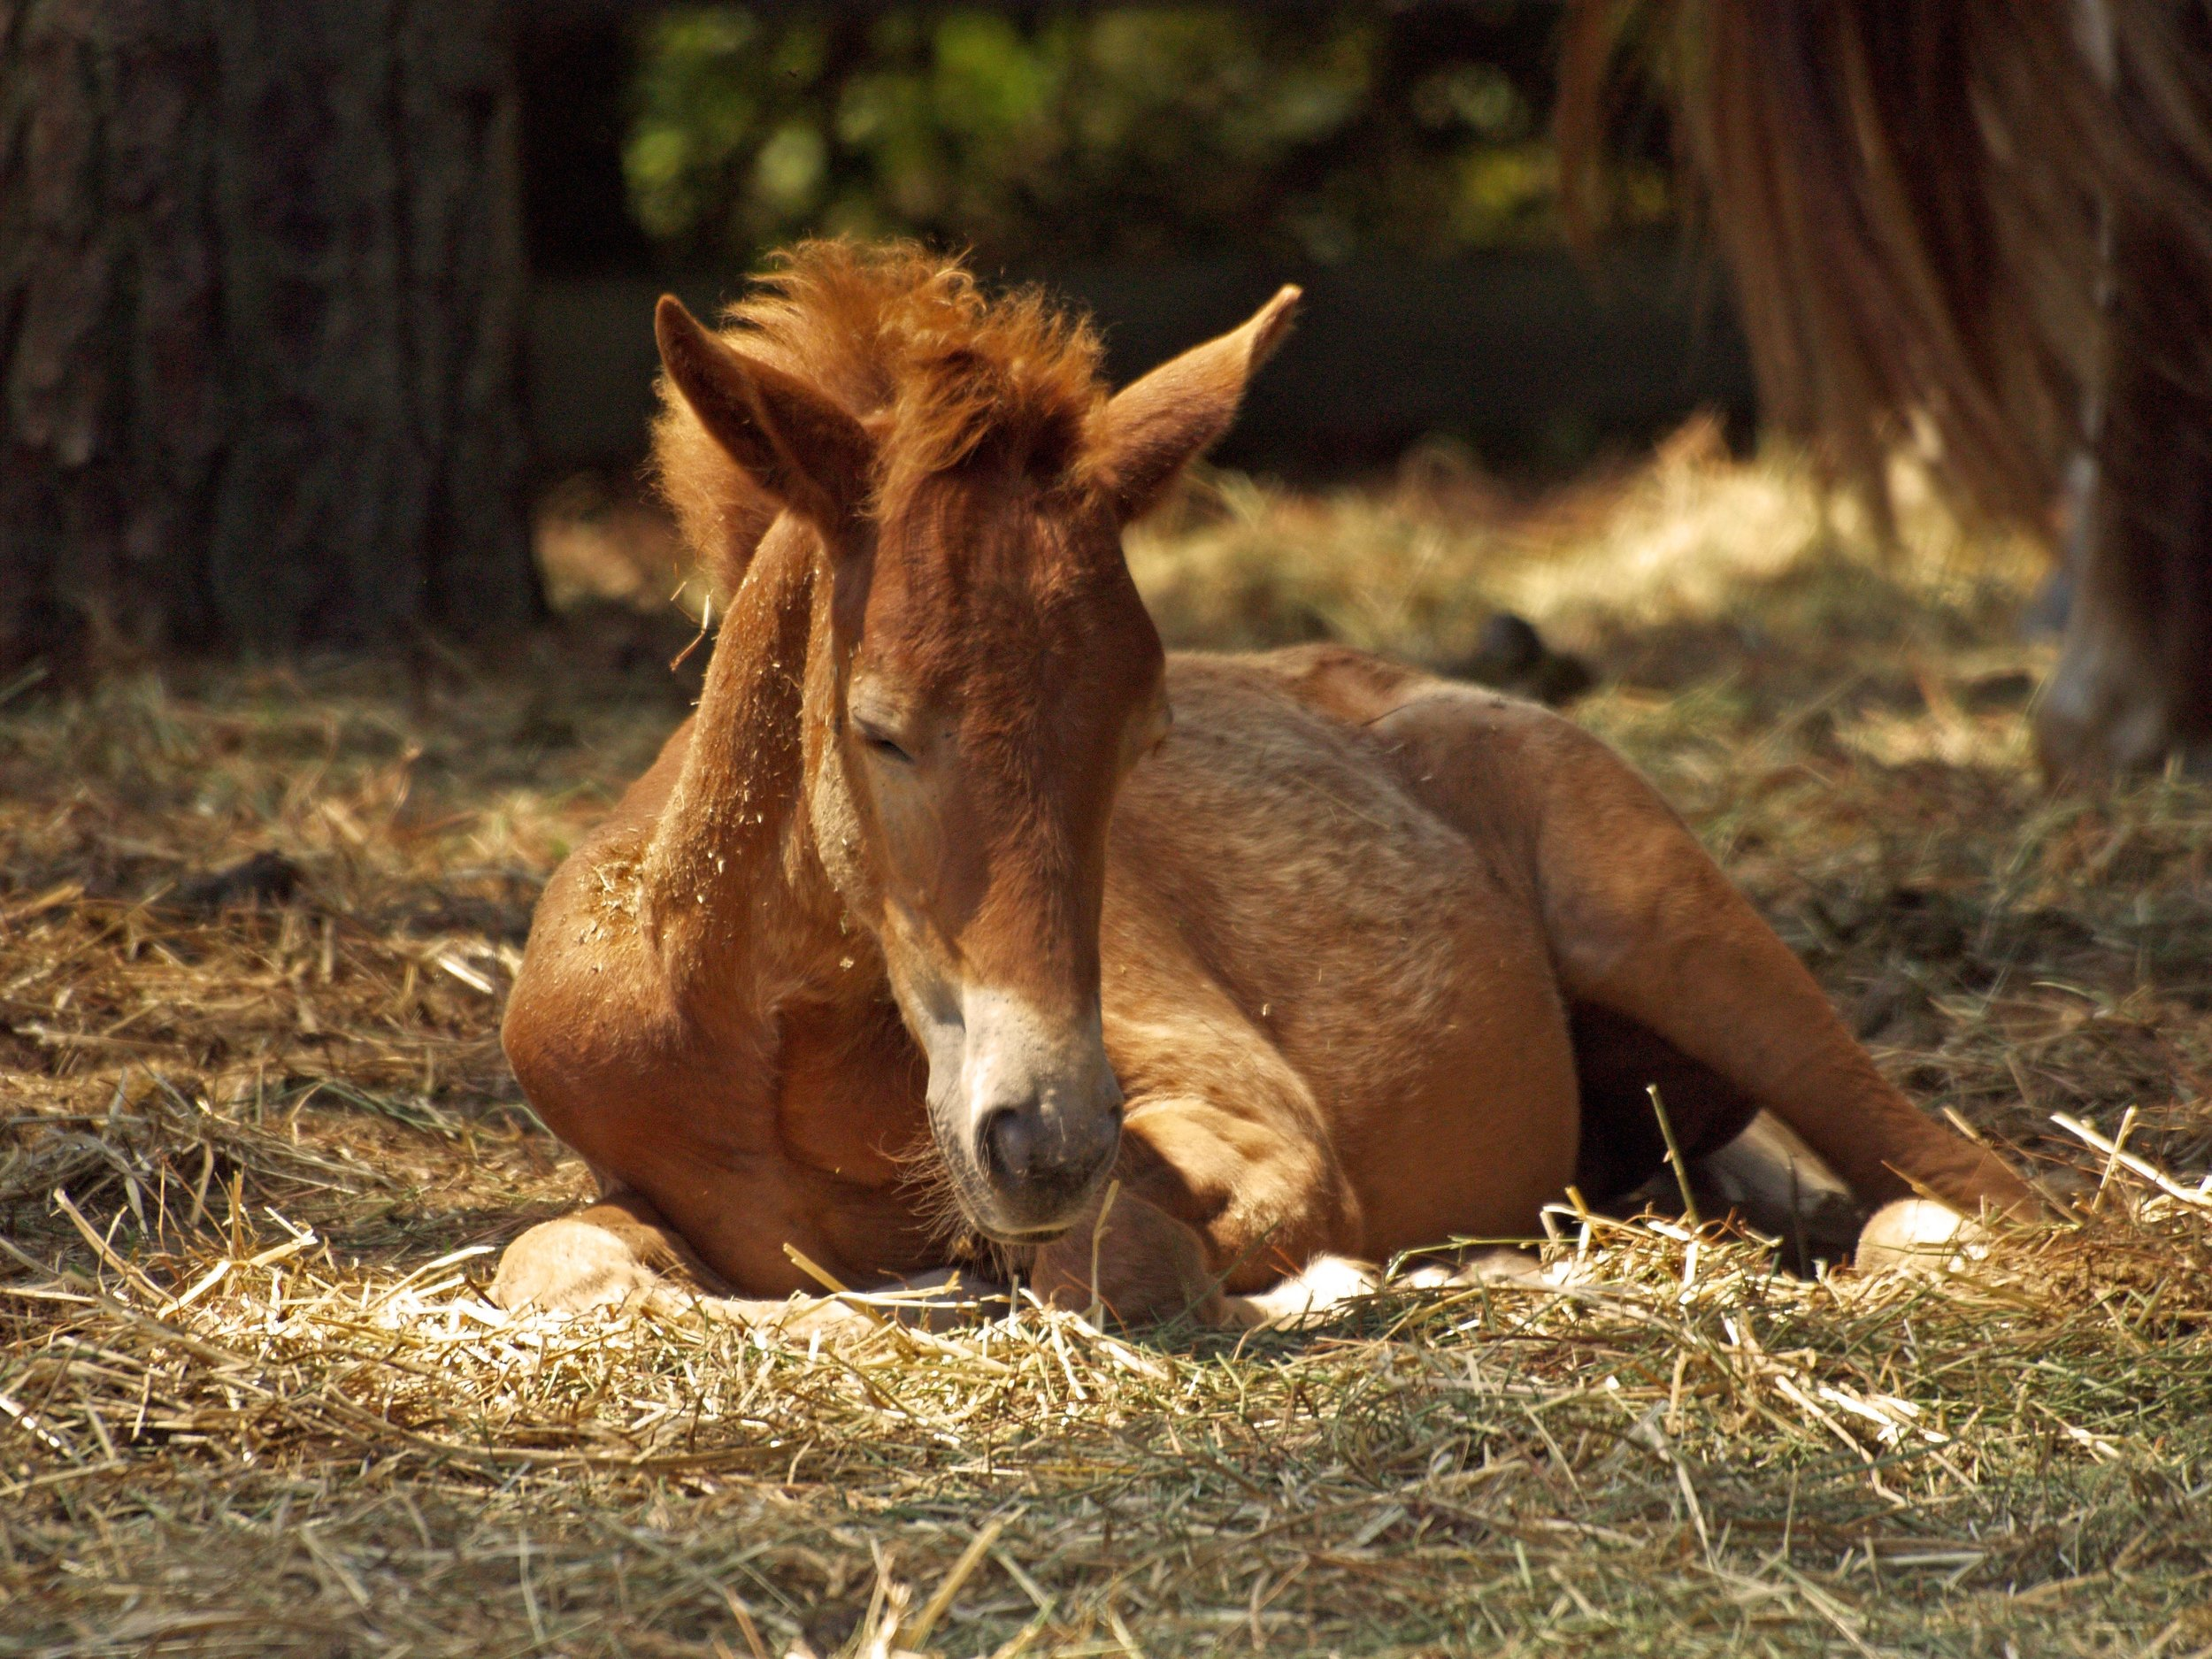 animal-farm-foal-37983.jpg